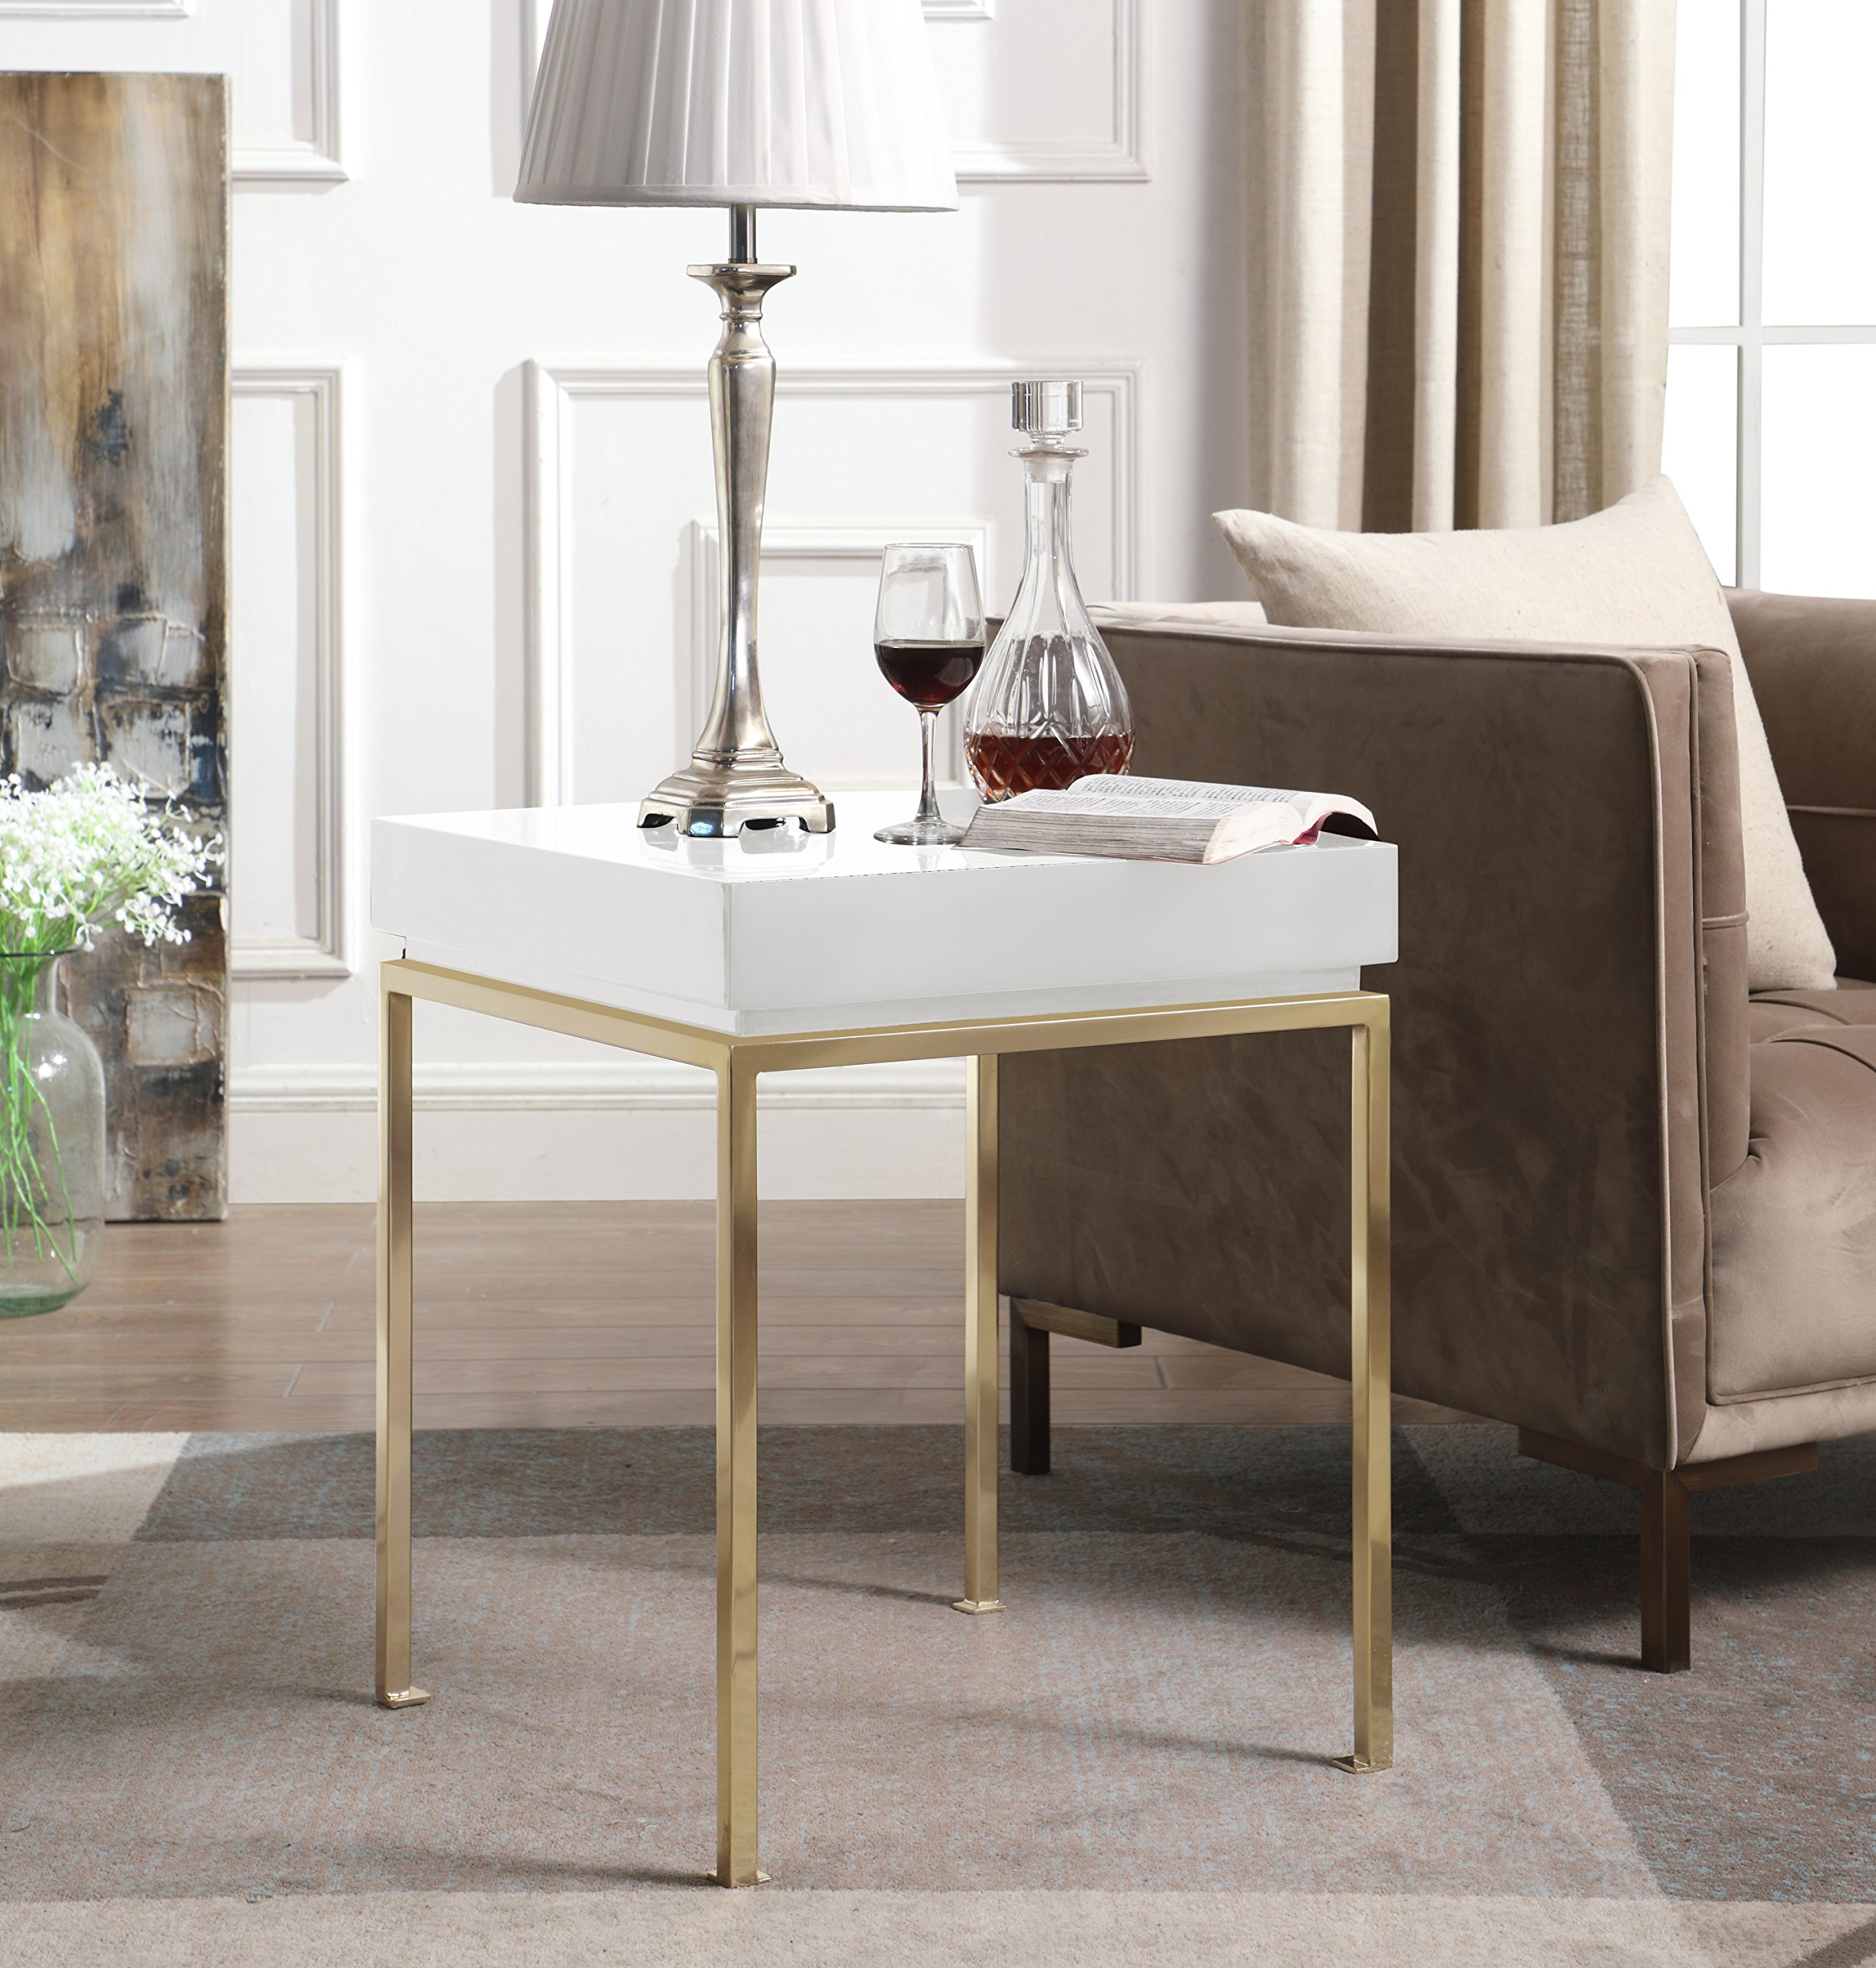 Iconic Home Cannes Nightstand Side Table Square Frame High Sheen Lacquer Finsh Top Gold Plated Metal Legs, Modern Contemporary, White